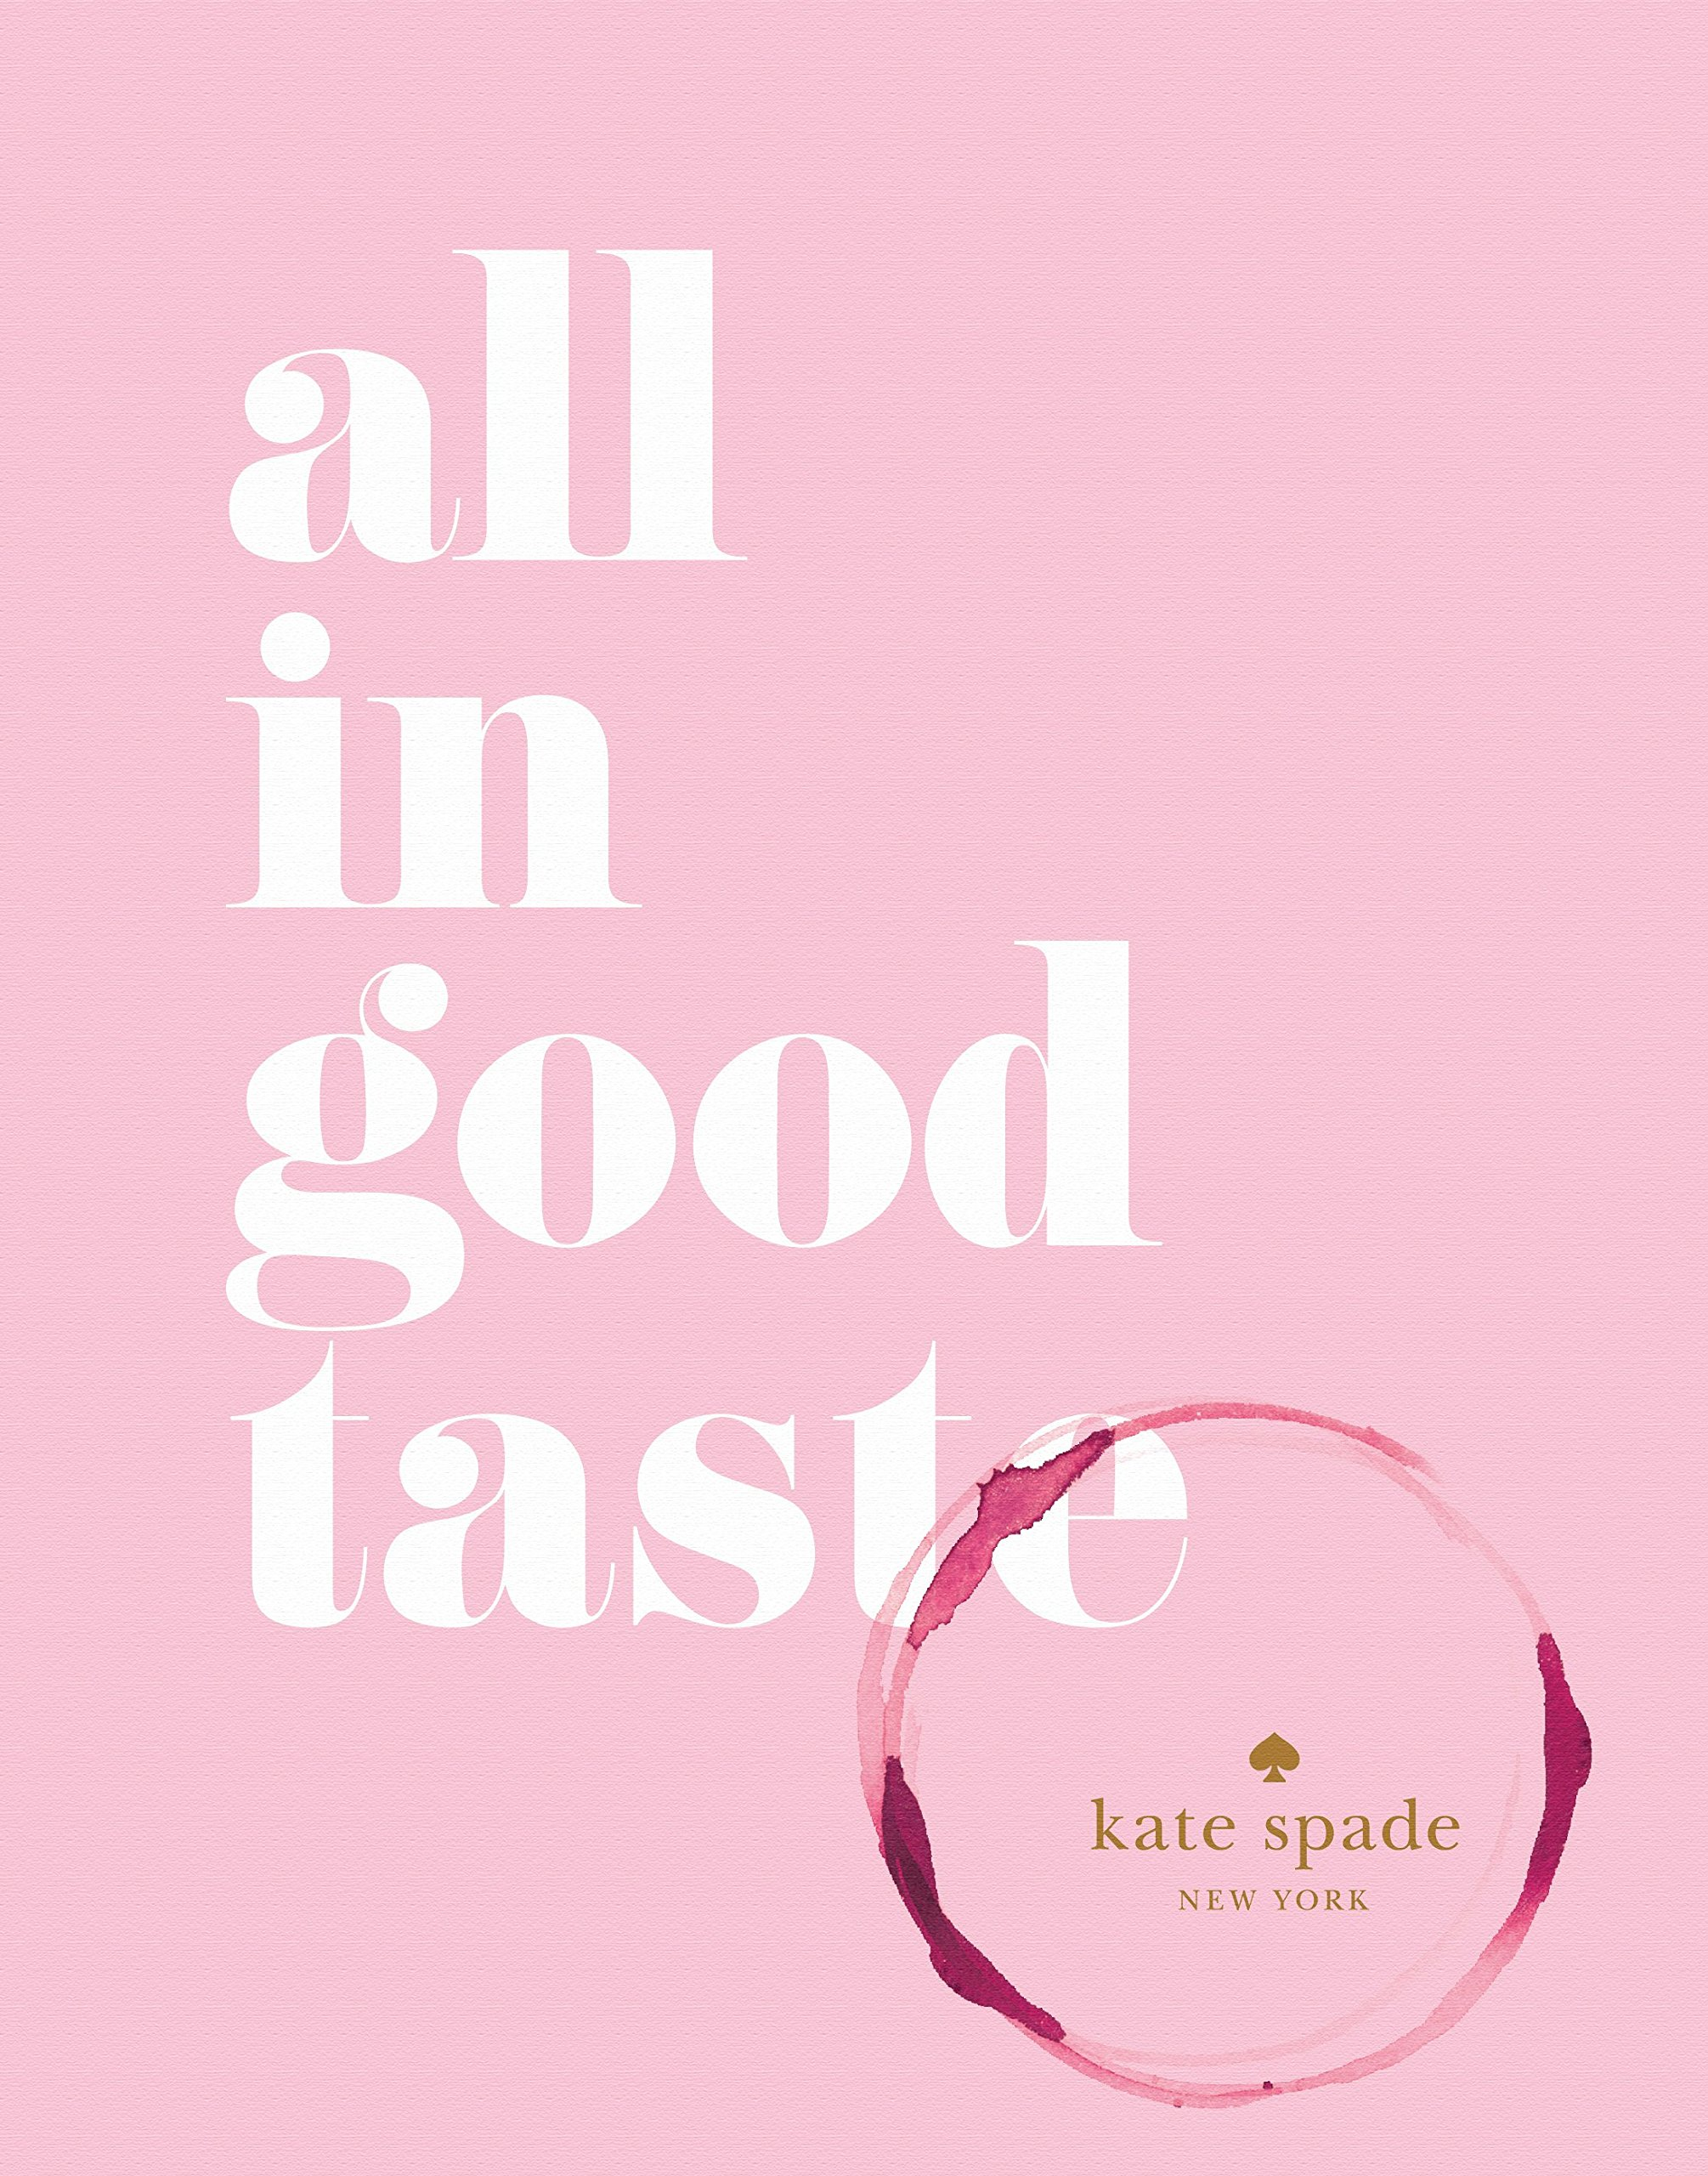 kate spade new york all in good taste kate spade new york